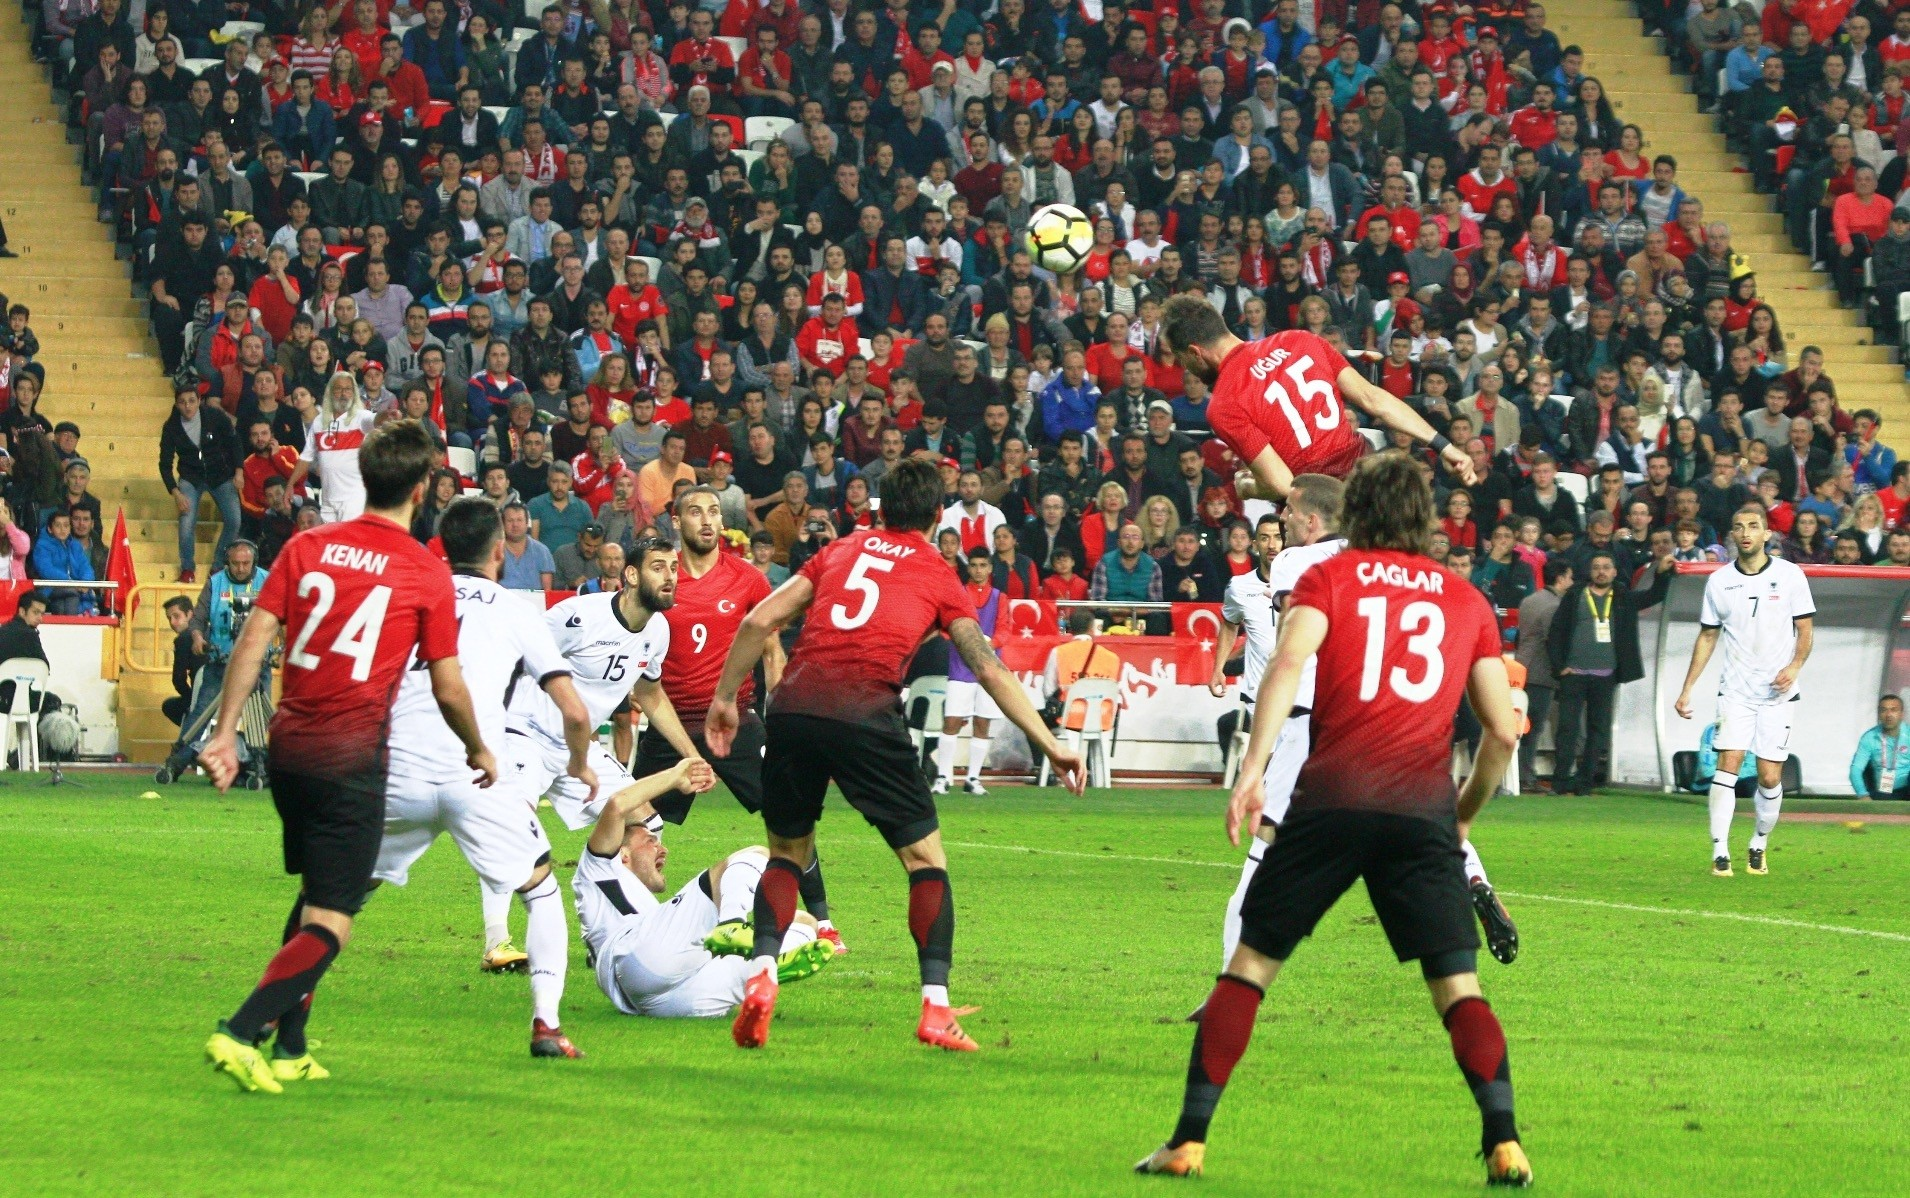 The Turkish national football team played its 555th international tie, and sixth under coach Mircea Lucescu, when it faced Albania in a friendly in Antalya on Monday.